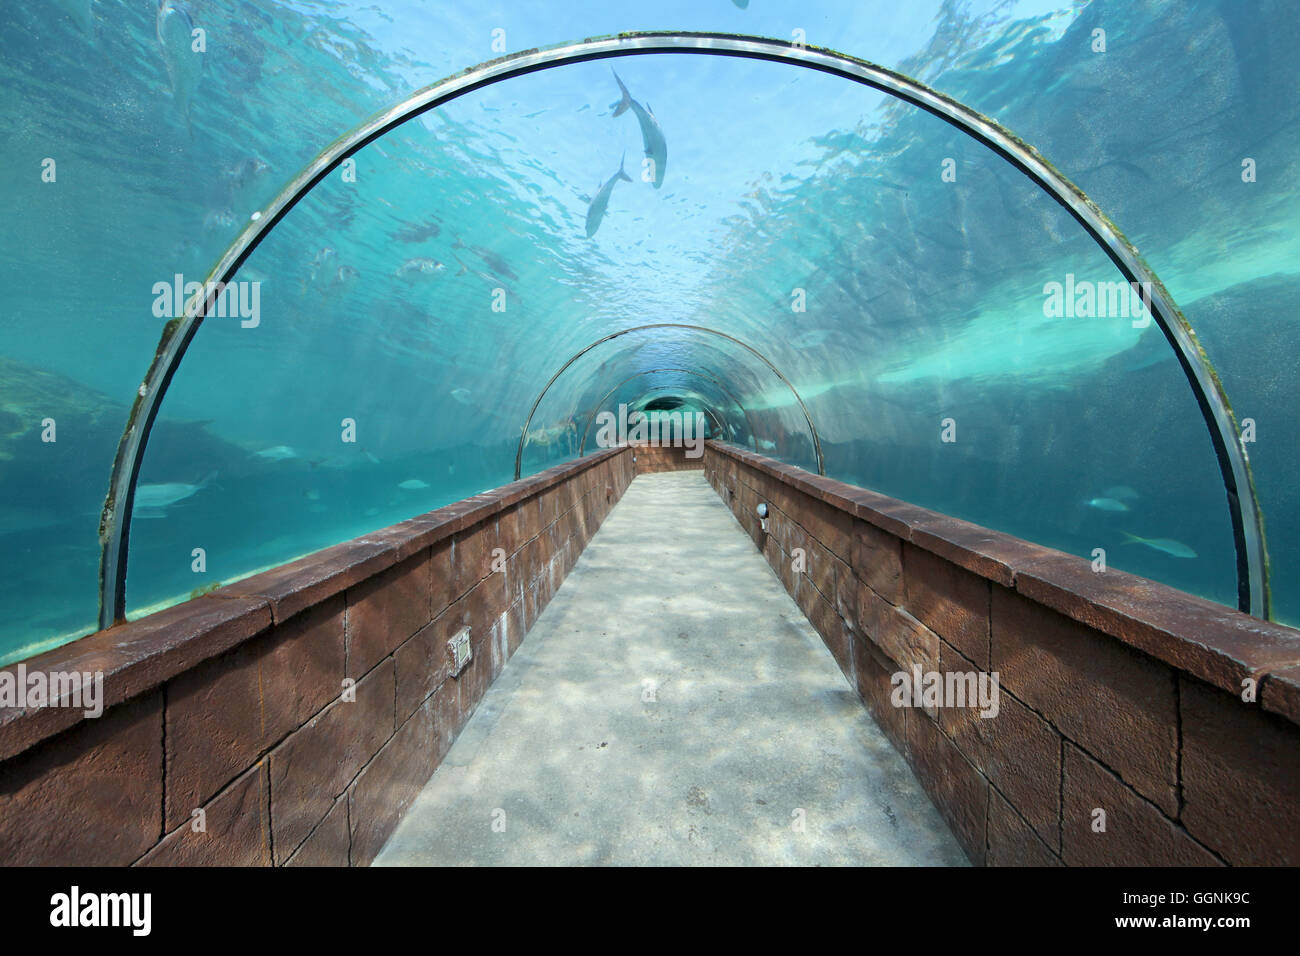 Looking through an aquarium tunnel with fish - Stock Image